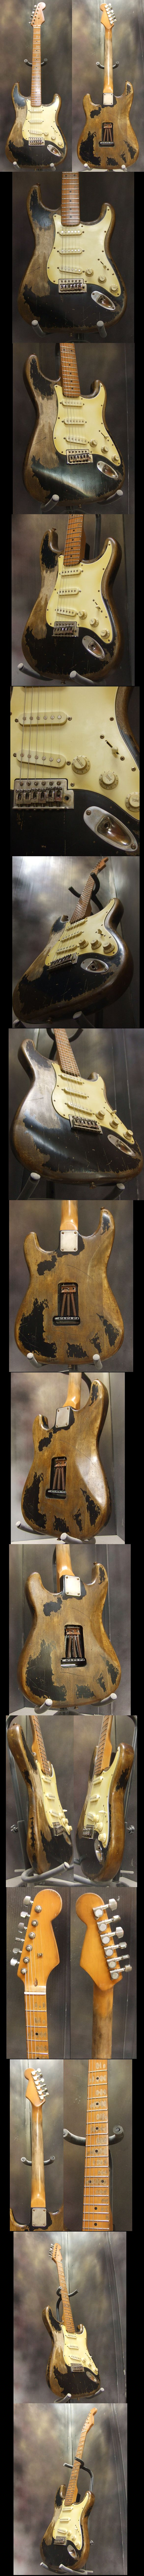 John Mayer風...you can't go by looks for a beautiful sound.......this guitar has made people smile many a time.jww